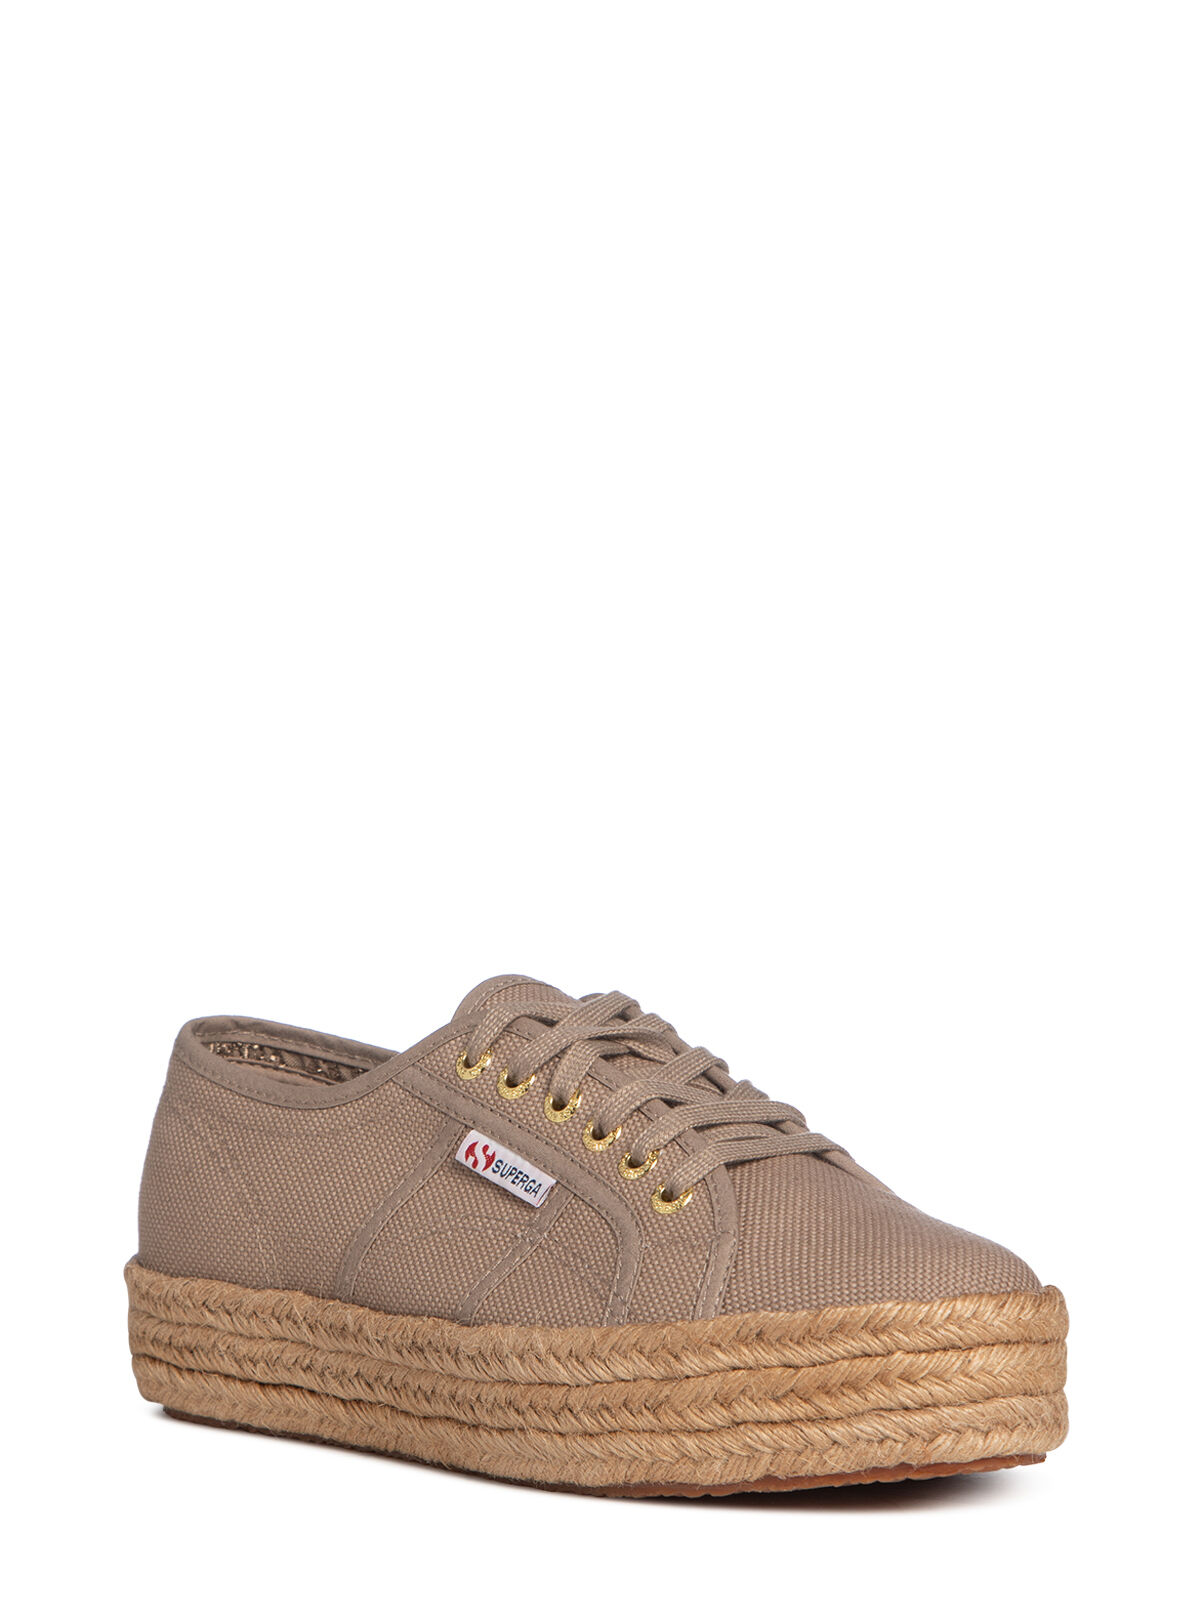 Superga Cotropew Sneaker taupe | Dress